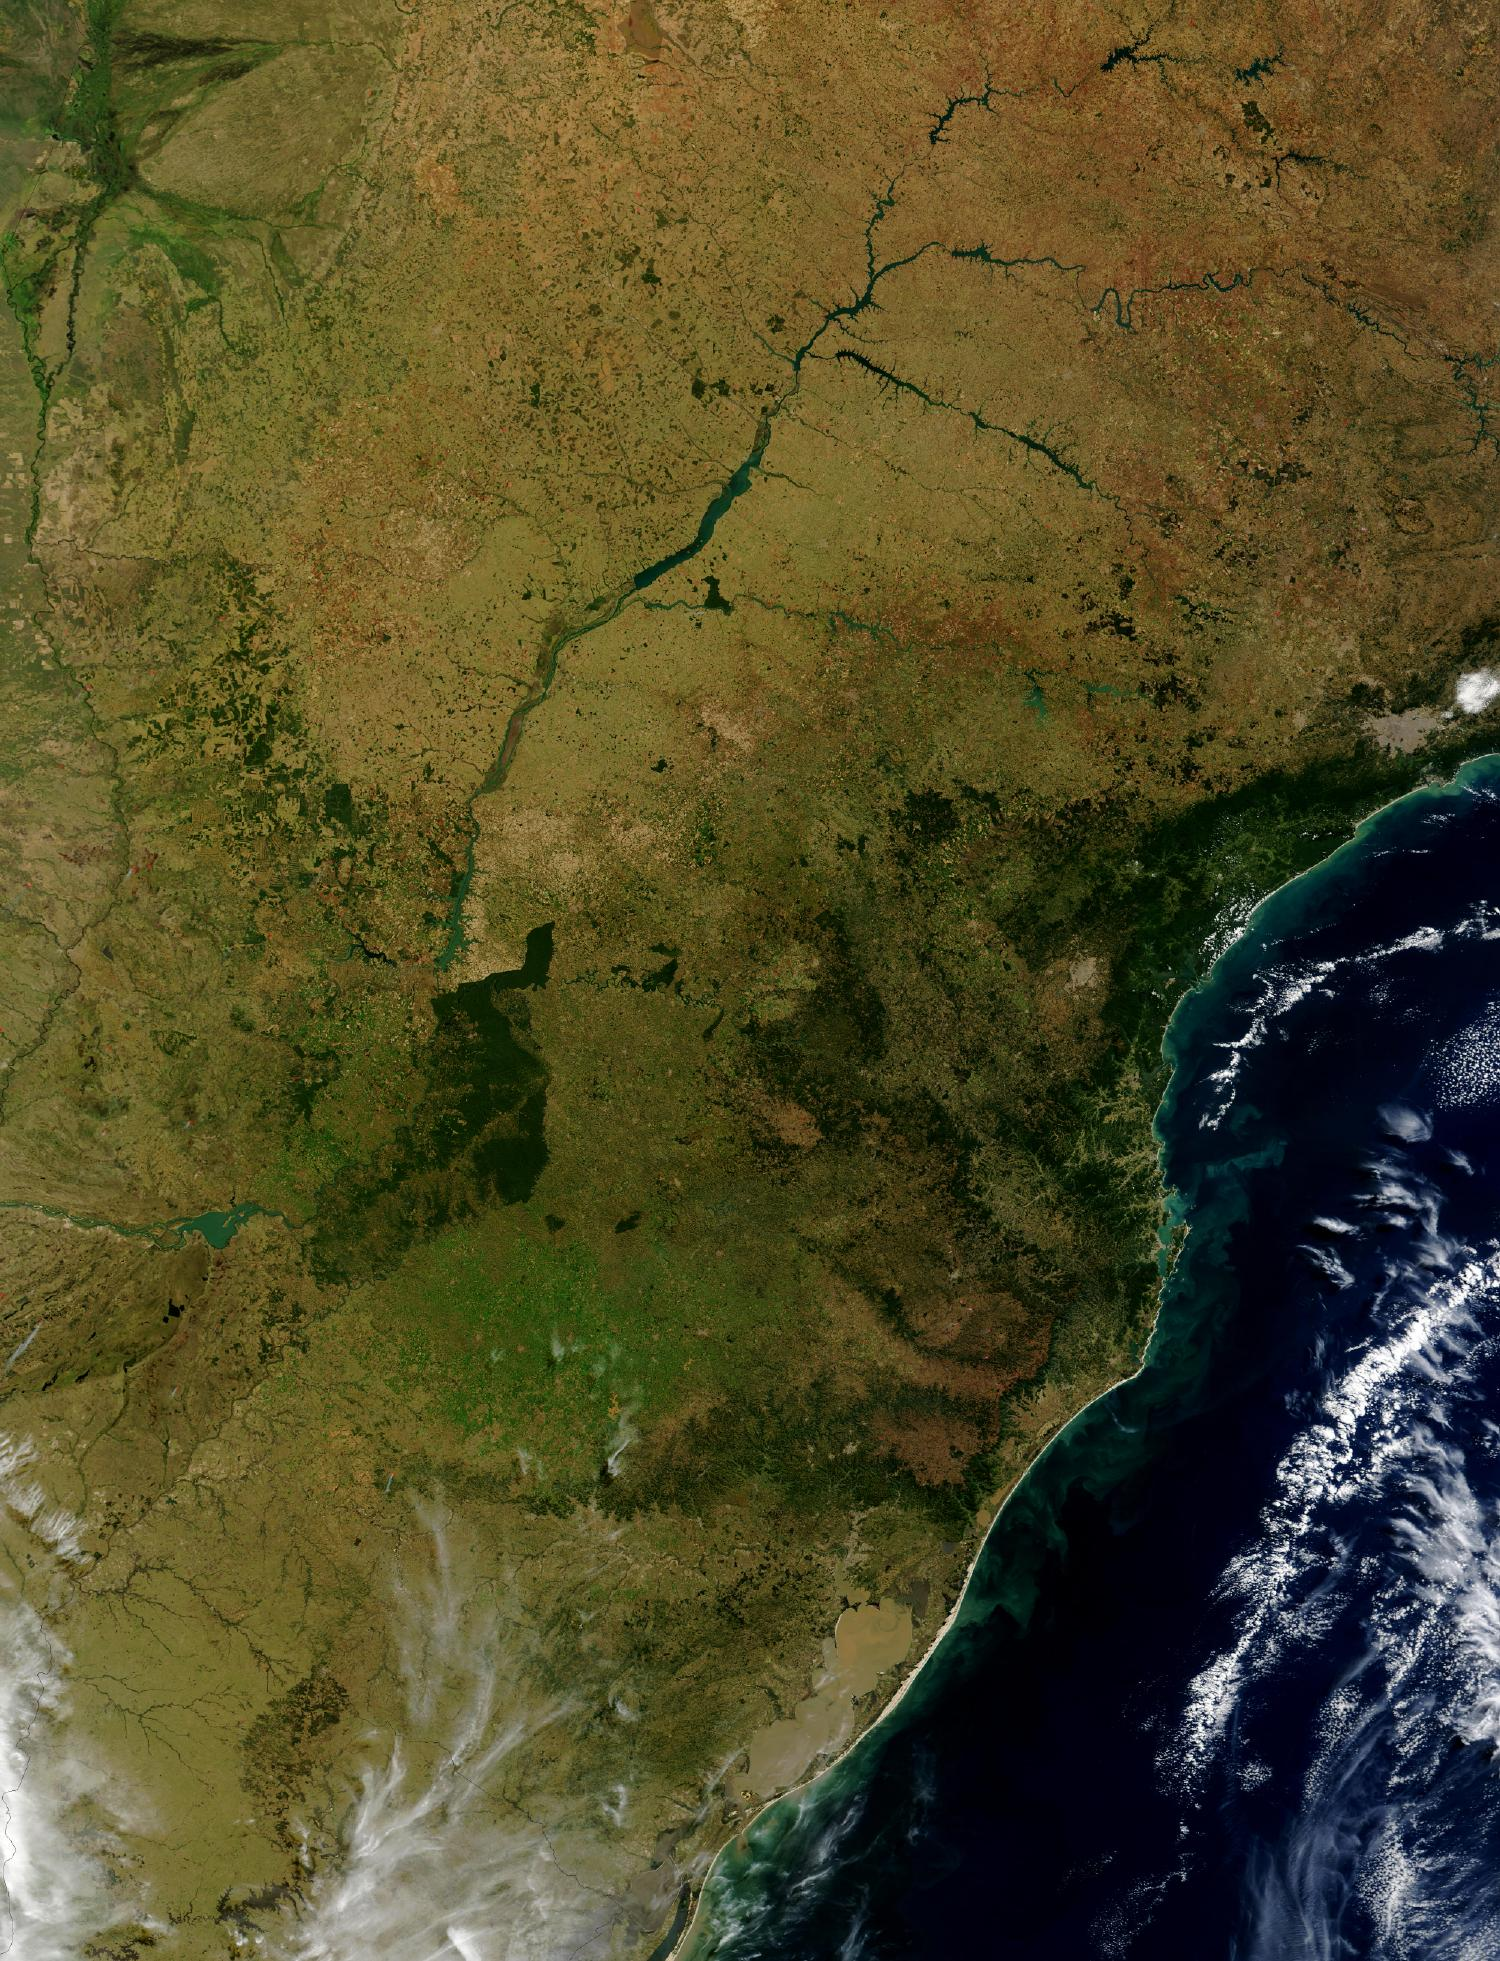 Satellite Image, Photo of Brazil's Southern Atlantic Coastline